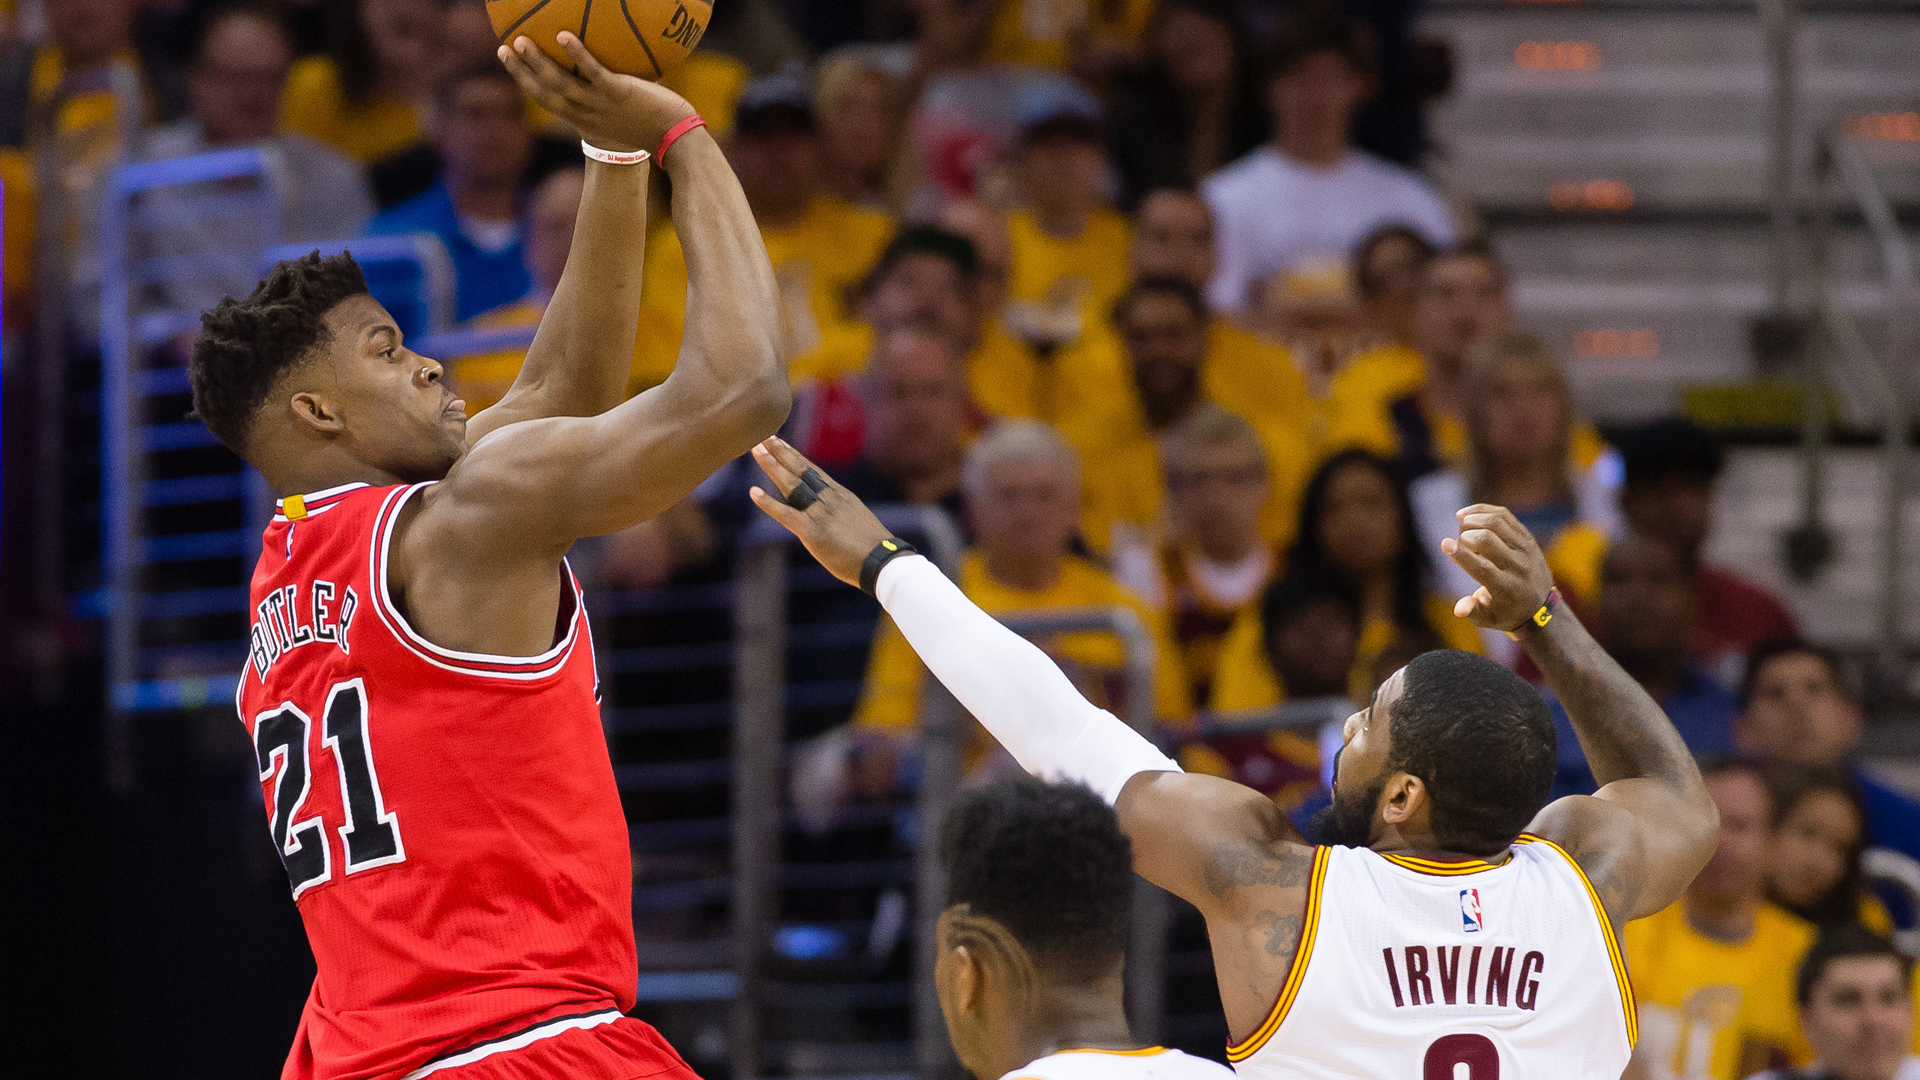 Report: Bulls' Jimmy Butler to win NBA's Most Improved Player award